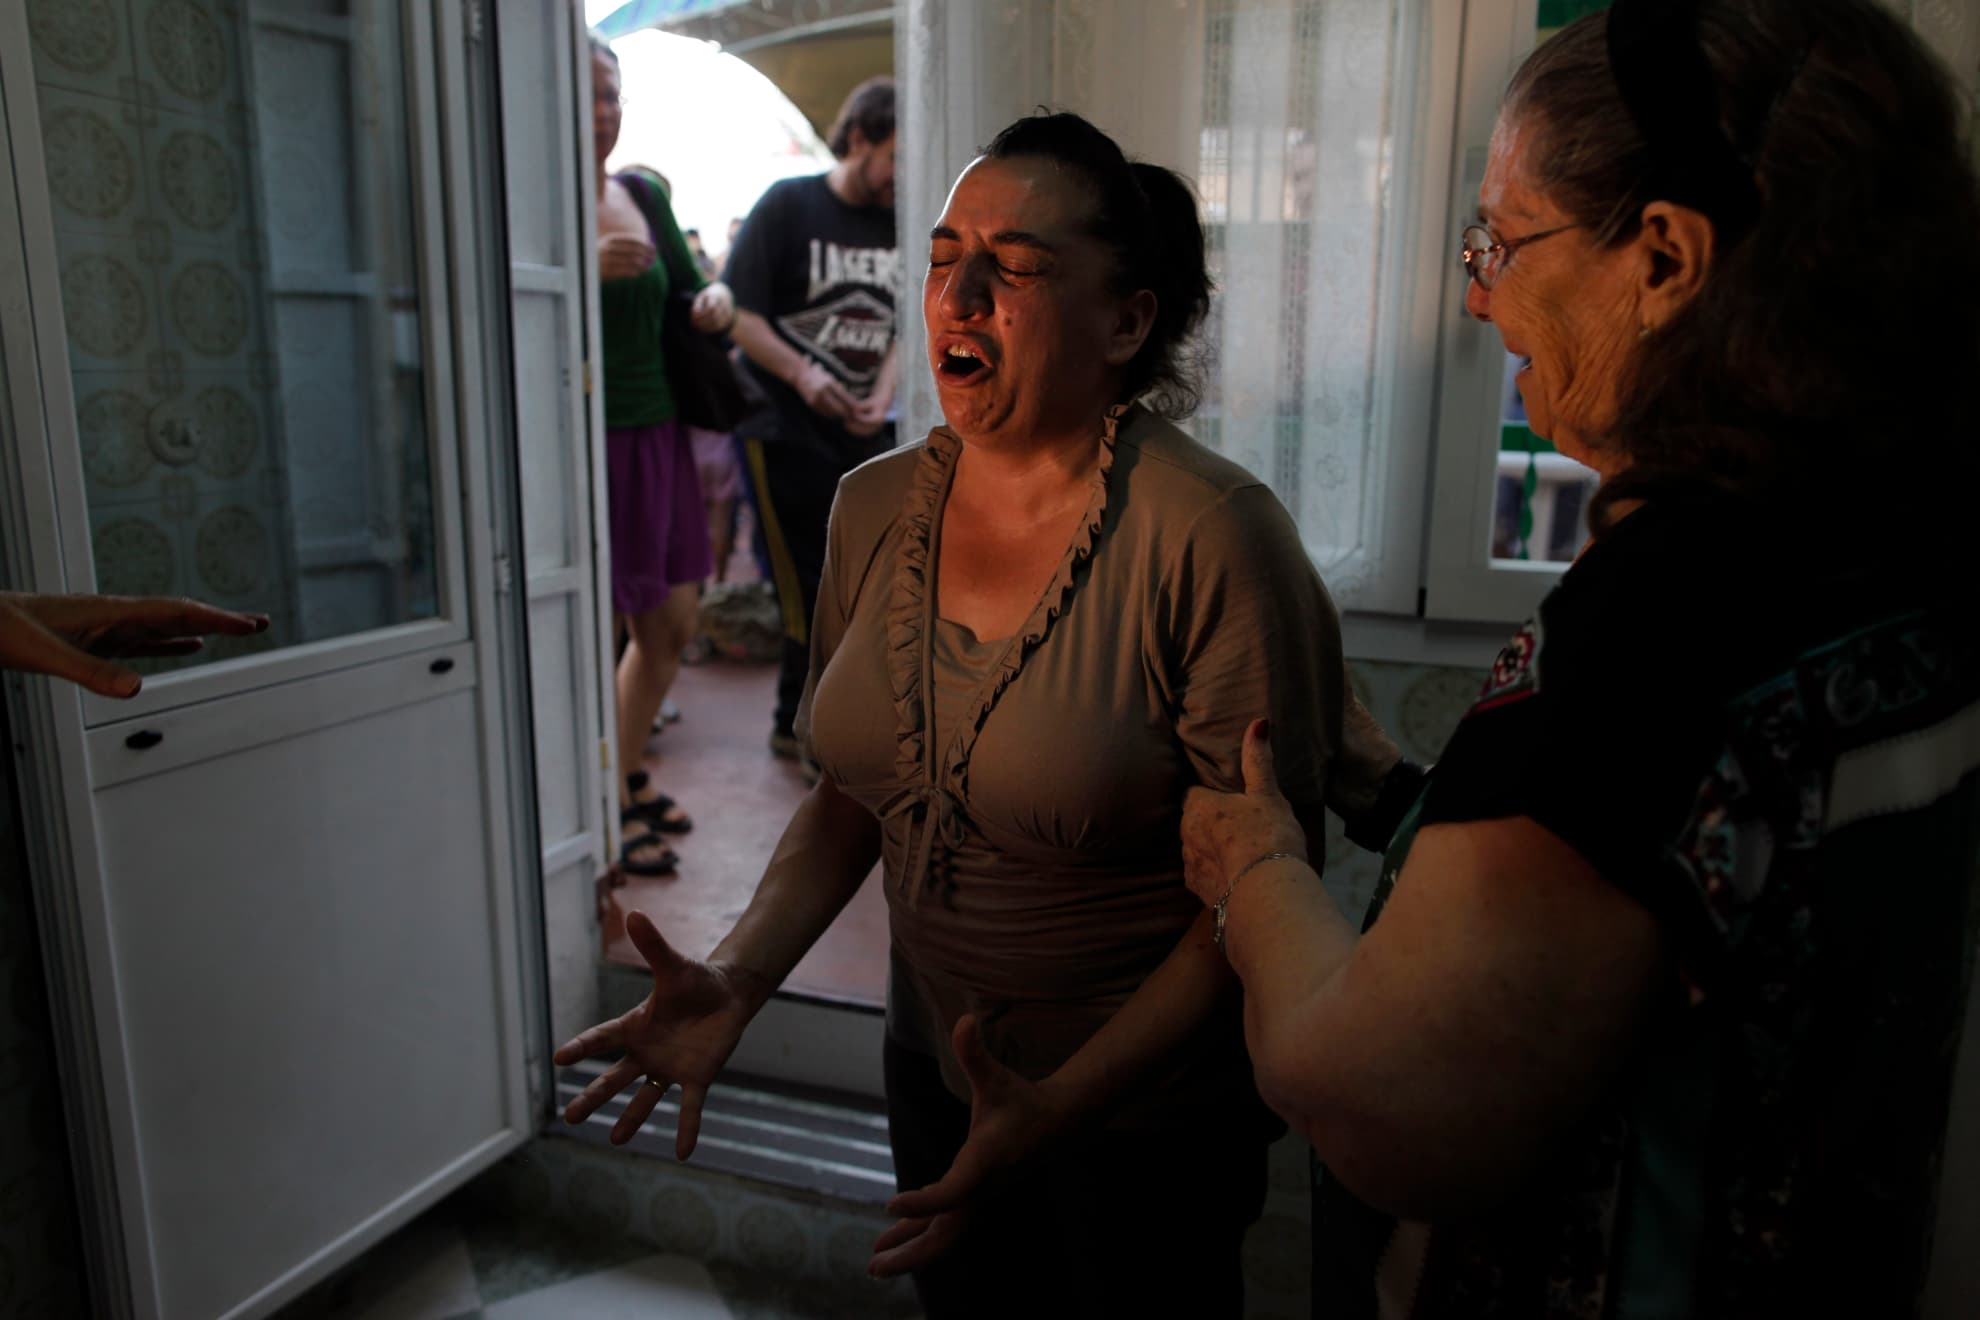 Luisa Gonzalez cries as her family eviction and the demolition of her house by a forced expropriation was postponed, she consideed a real estate speculation to built new appartment with the excuse that the house interferes with the Urban Plan in Madrid, Wednesday, Aug. 14, 2013.